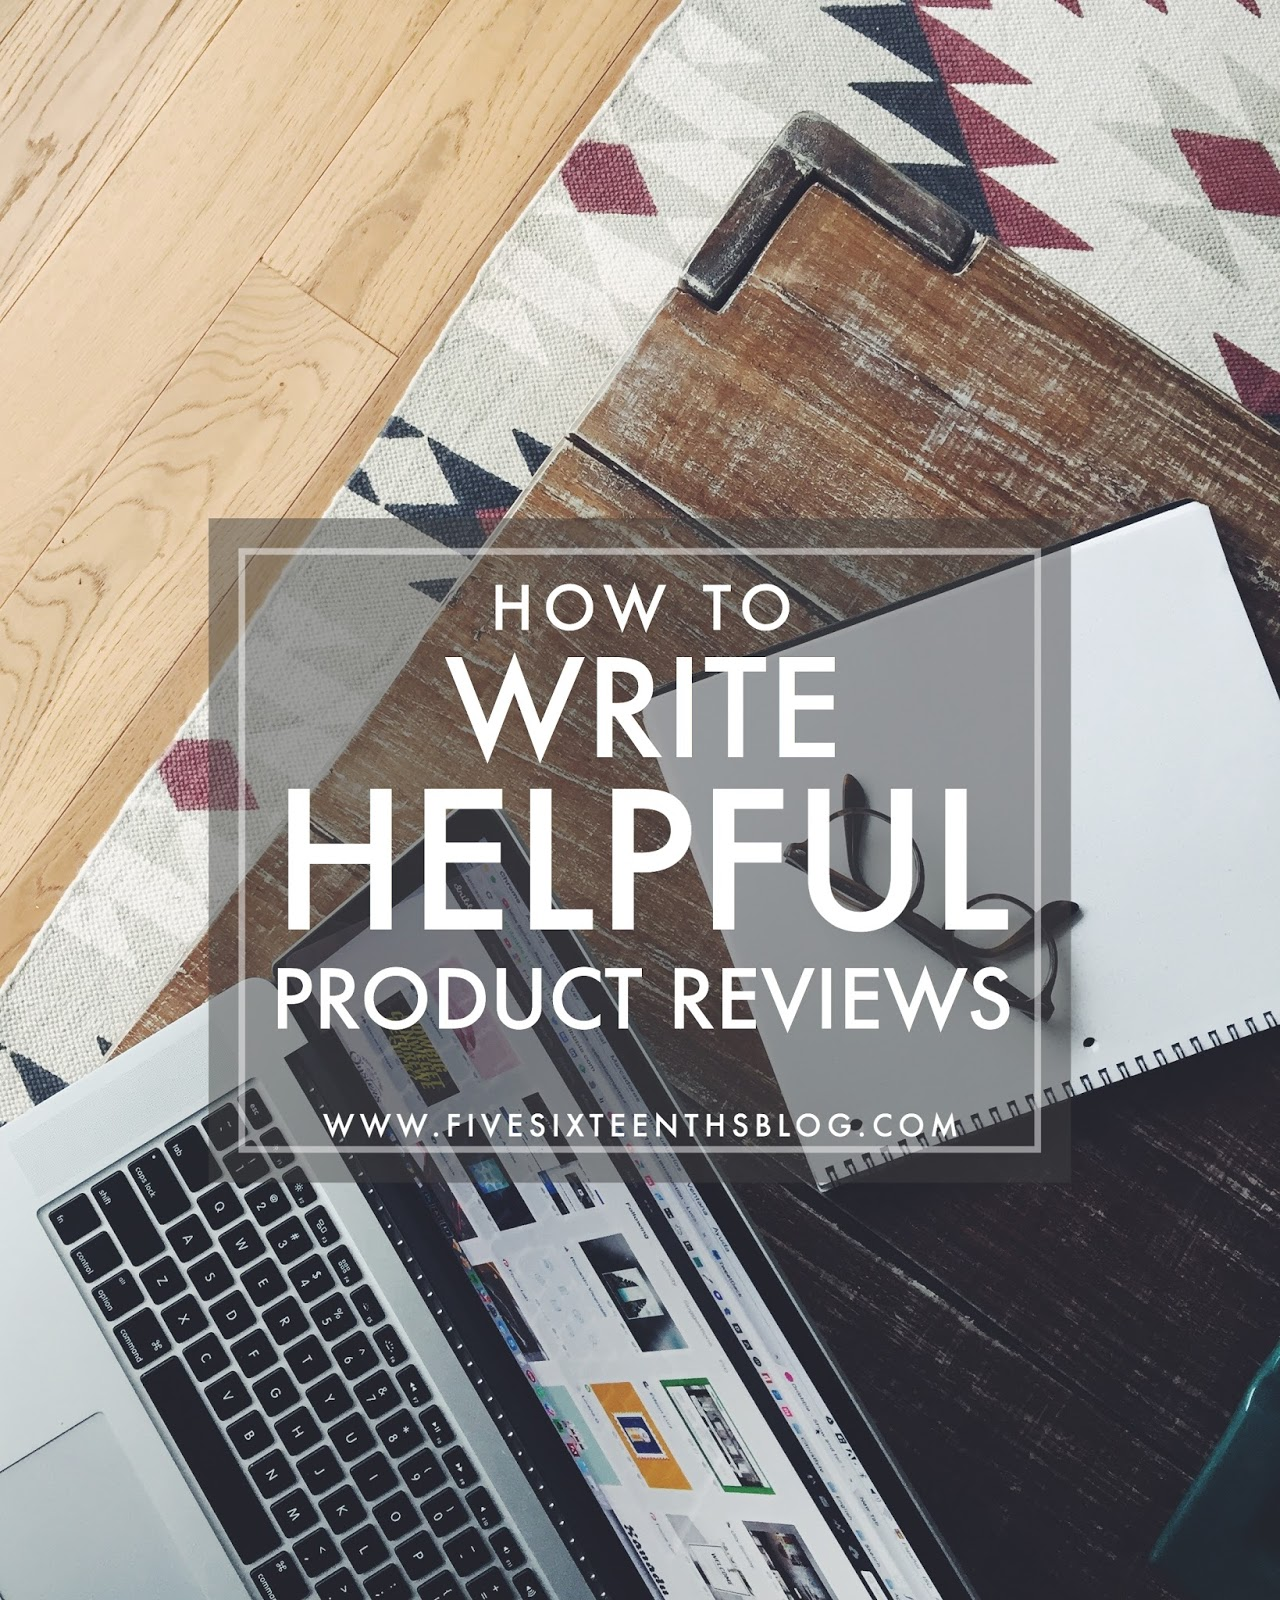 How to Write Helpful Reviews